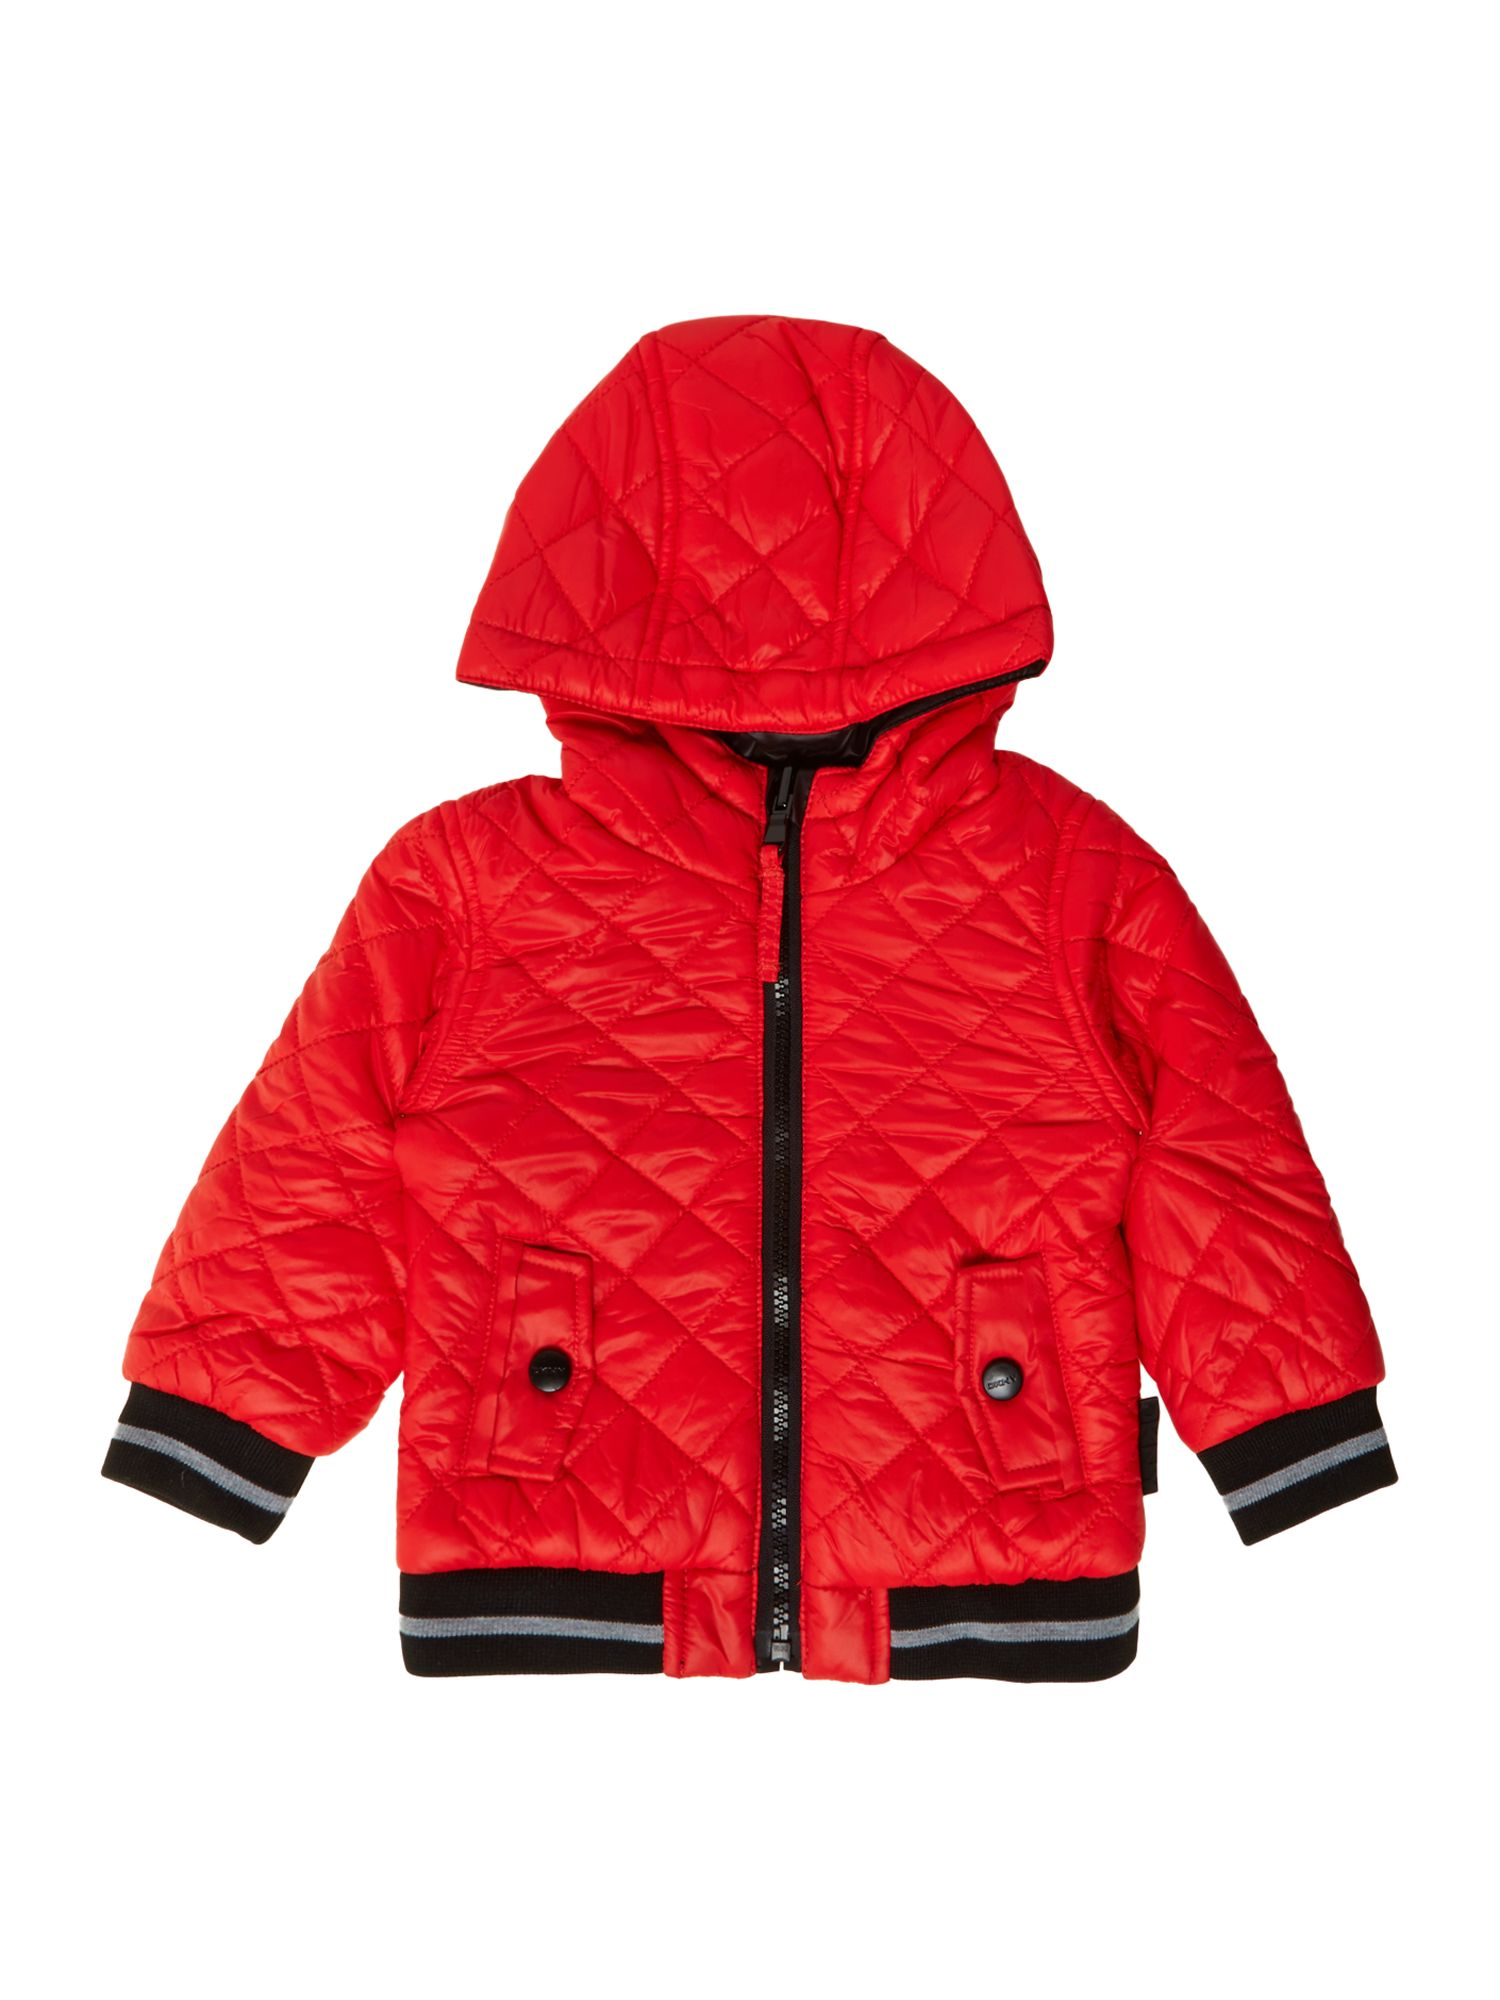 Boys reversible wool and fleece jacket